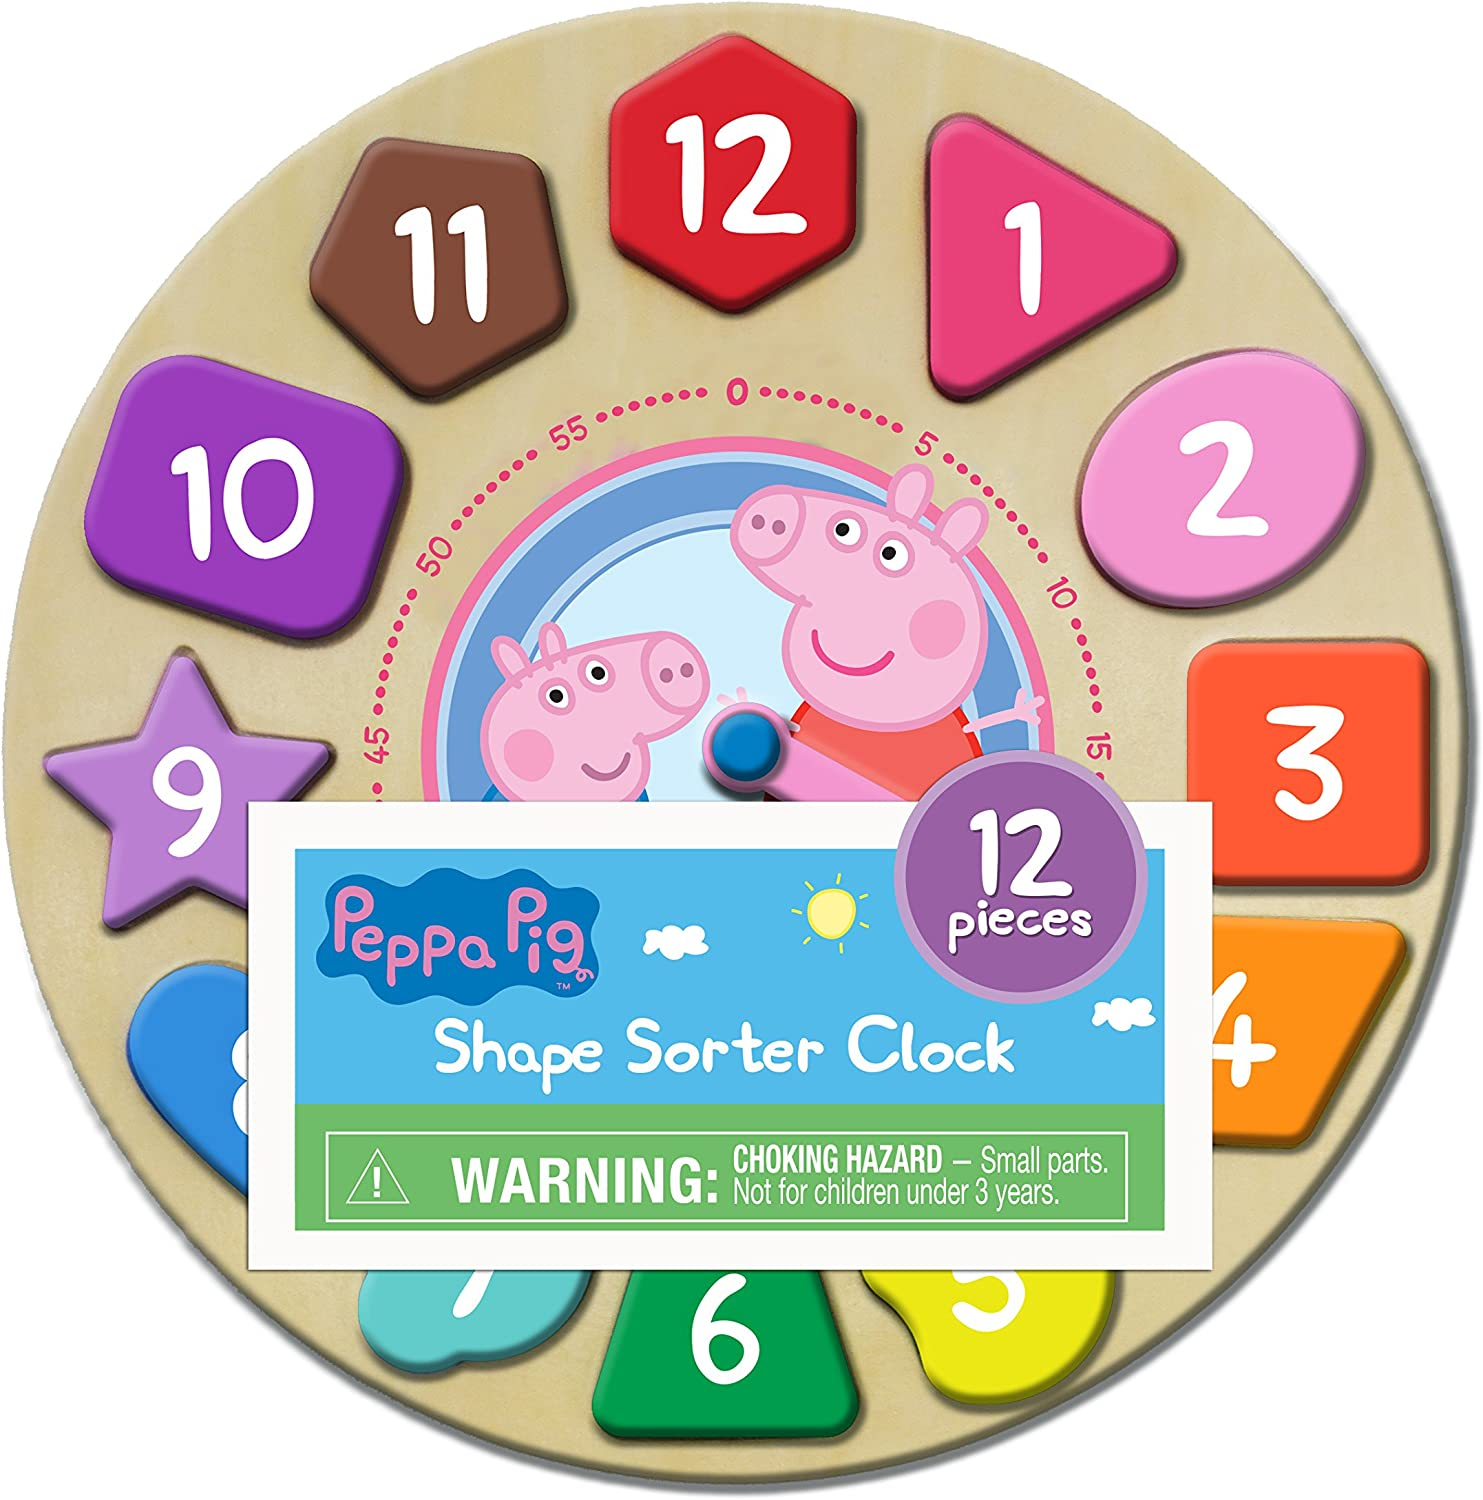 Top 6 Best Peppa Pig Toy (2020 Reviews & Buying Guide) 1